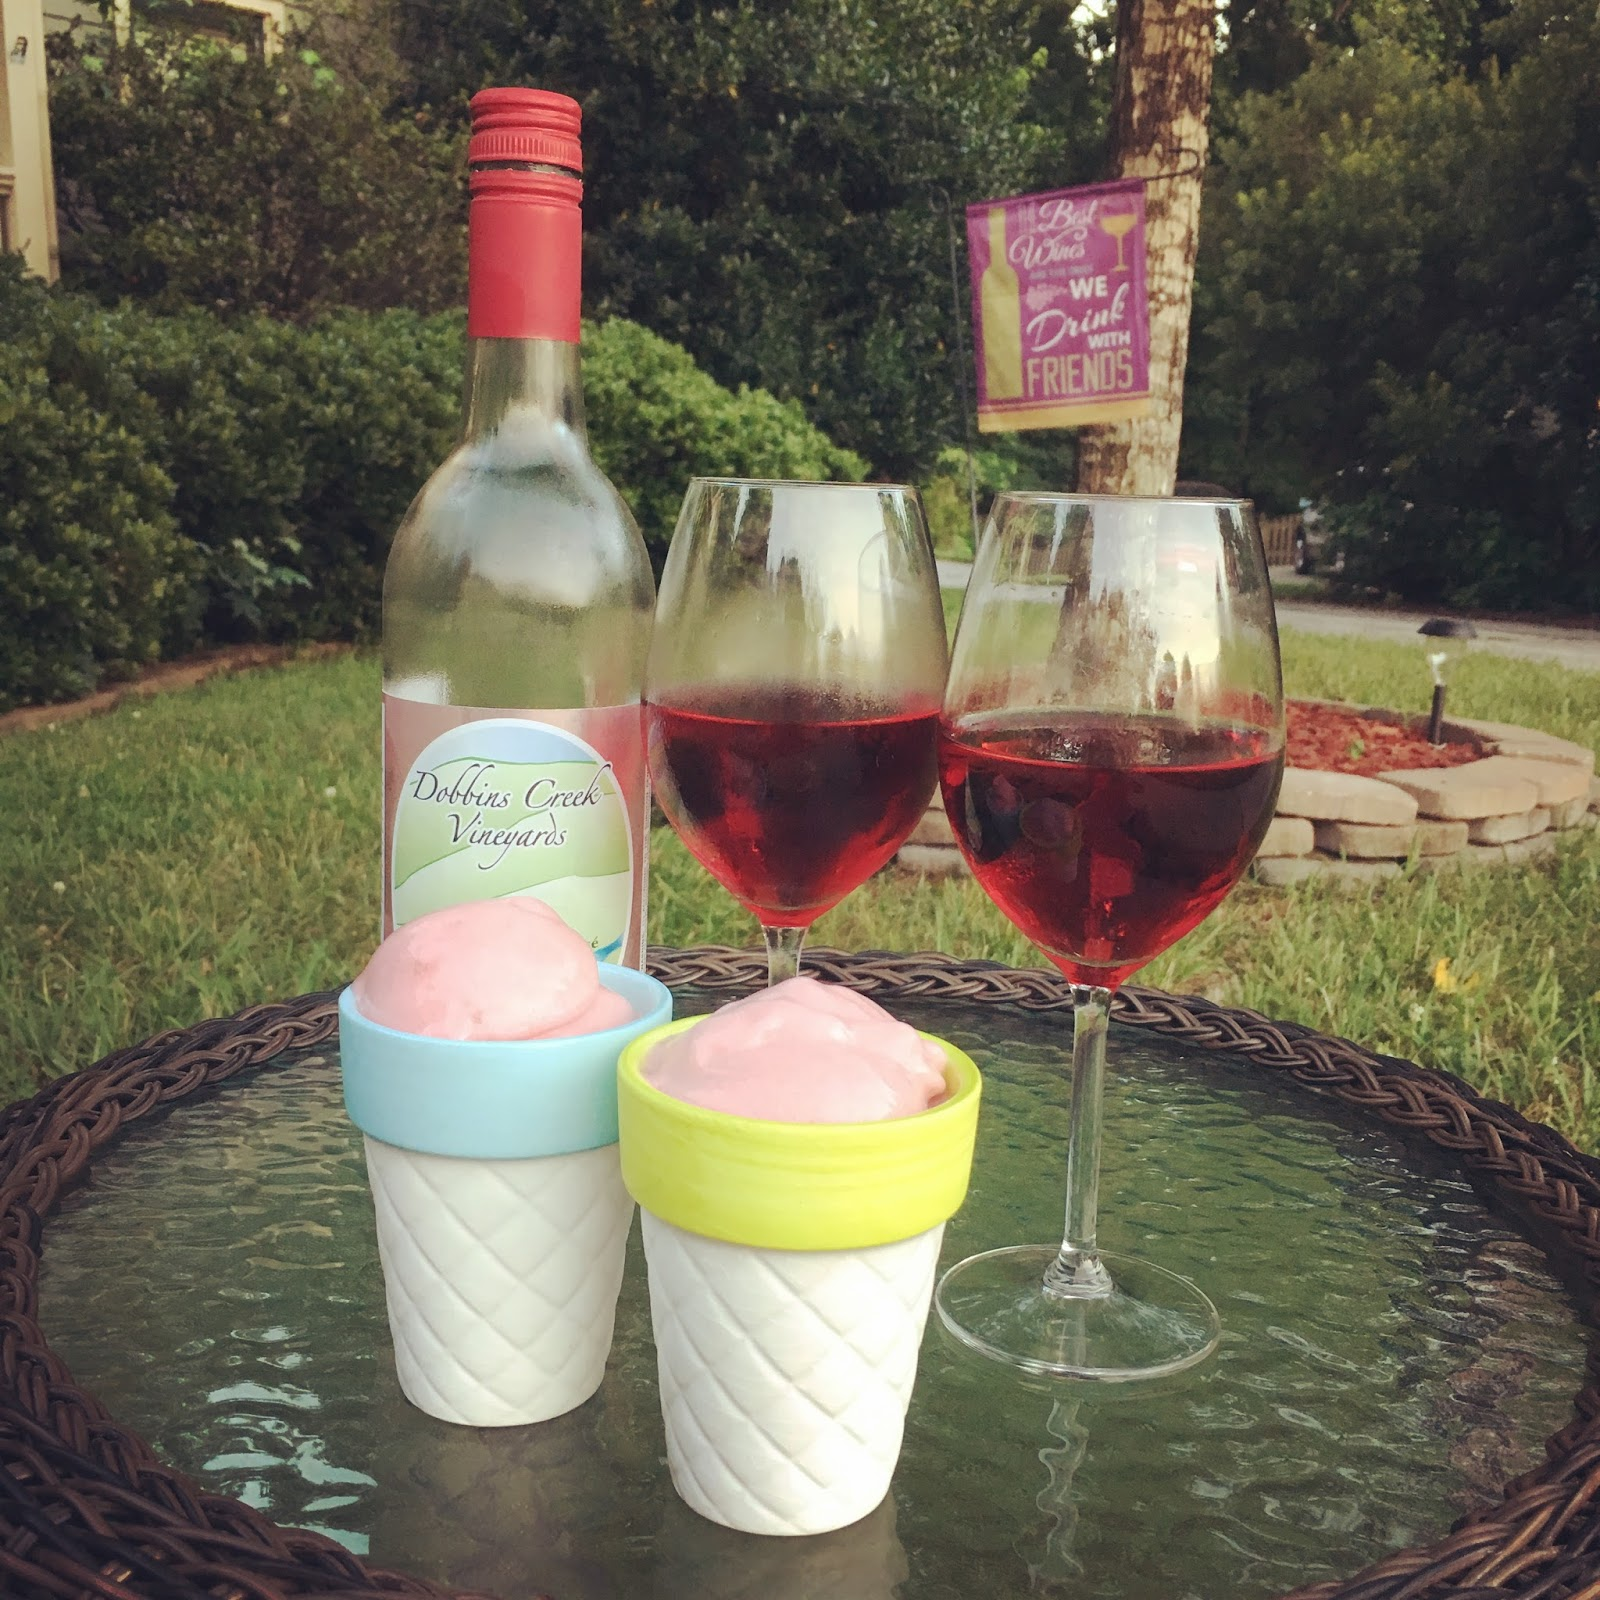 Dobbins Creek Vineyards Hemric Mountain Dry Rosé paired with rhubarb and gin sorbet -